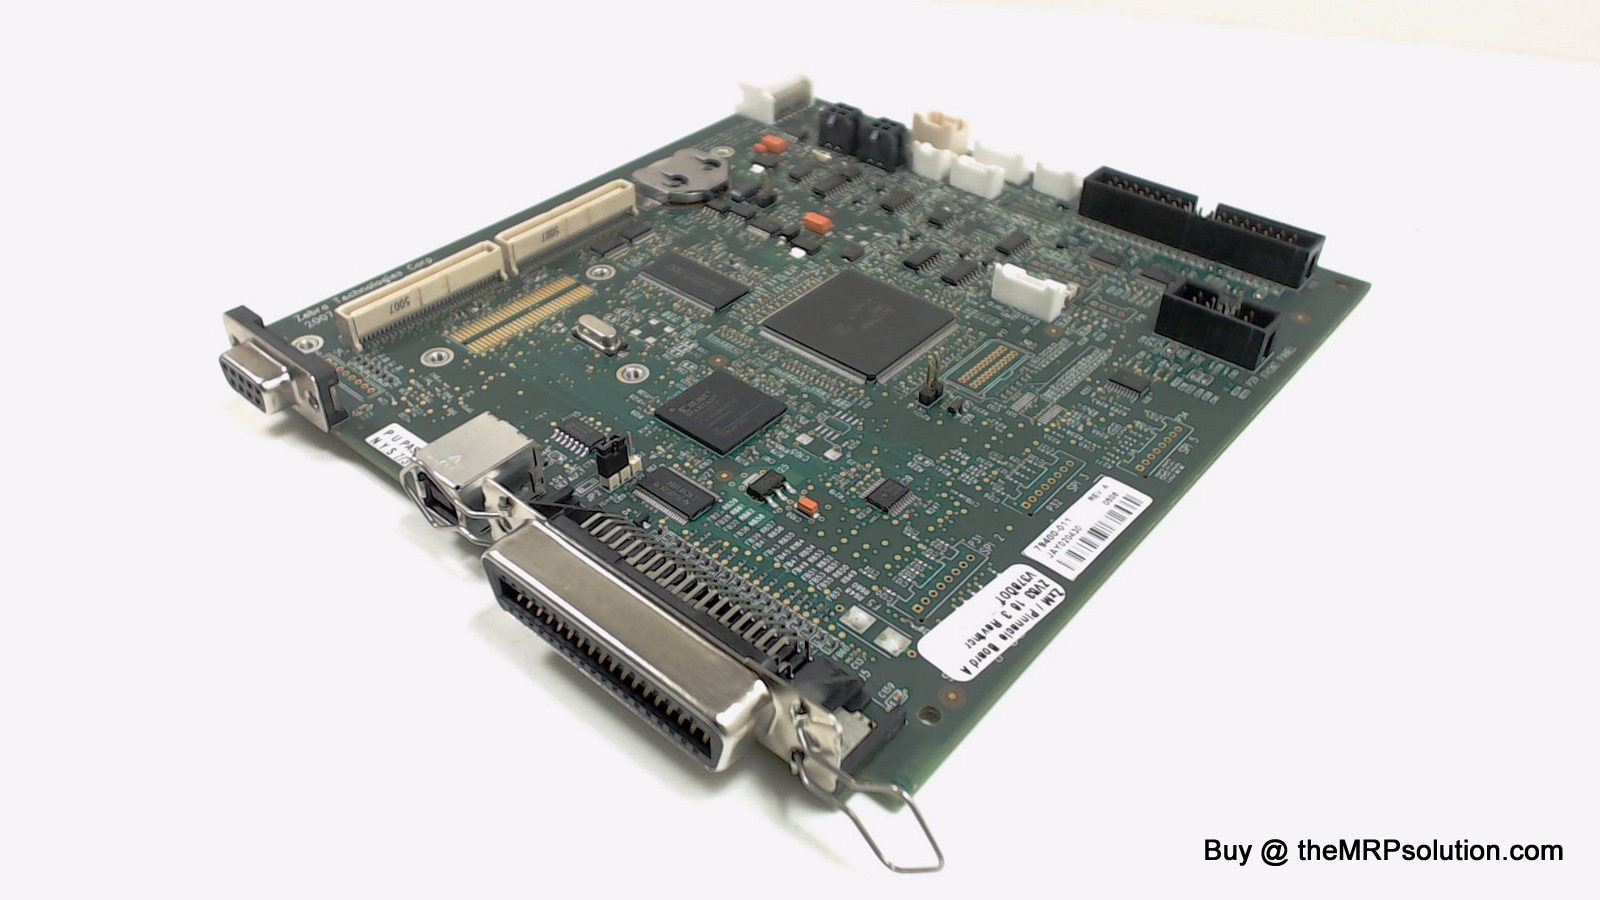 ZEBRA 79400-001M MAIN LOGIC BOARD, 8MB, ZMX00 New